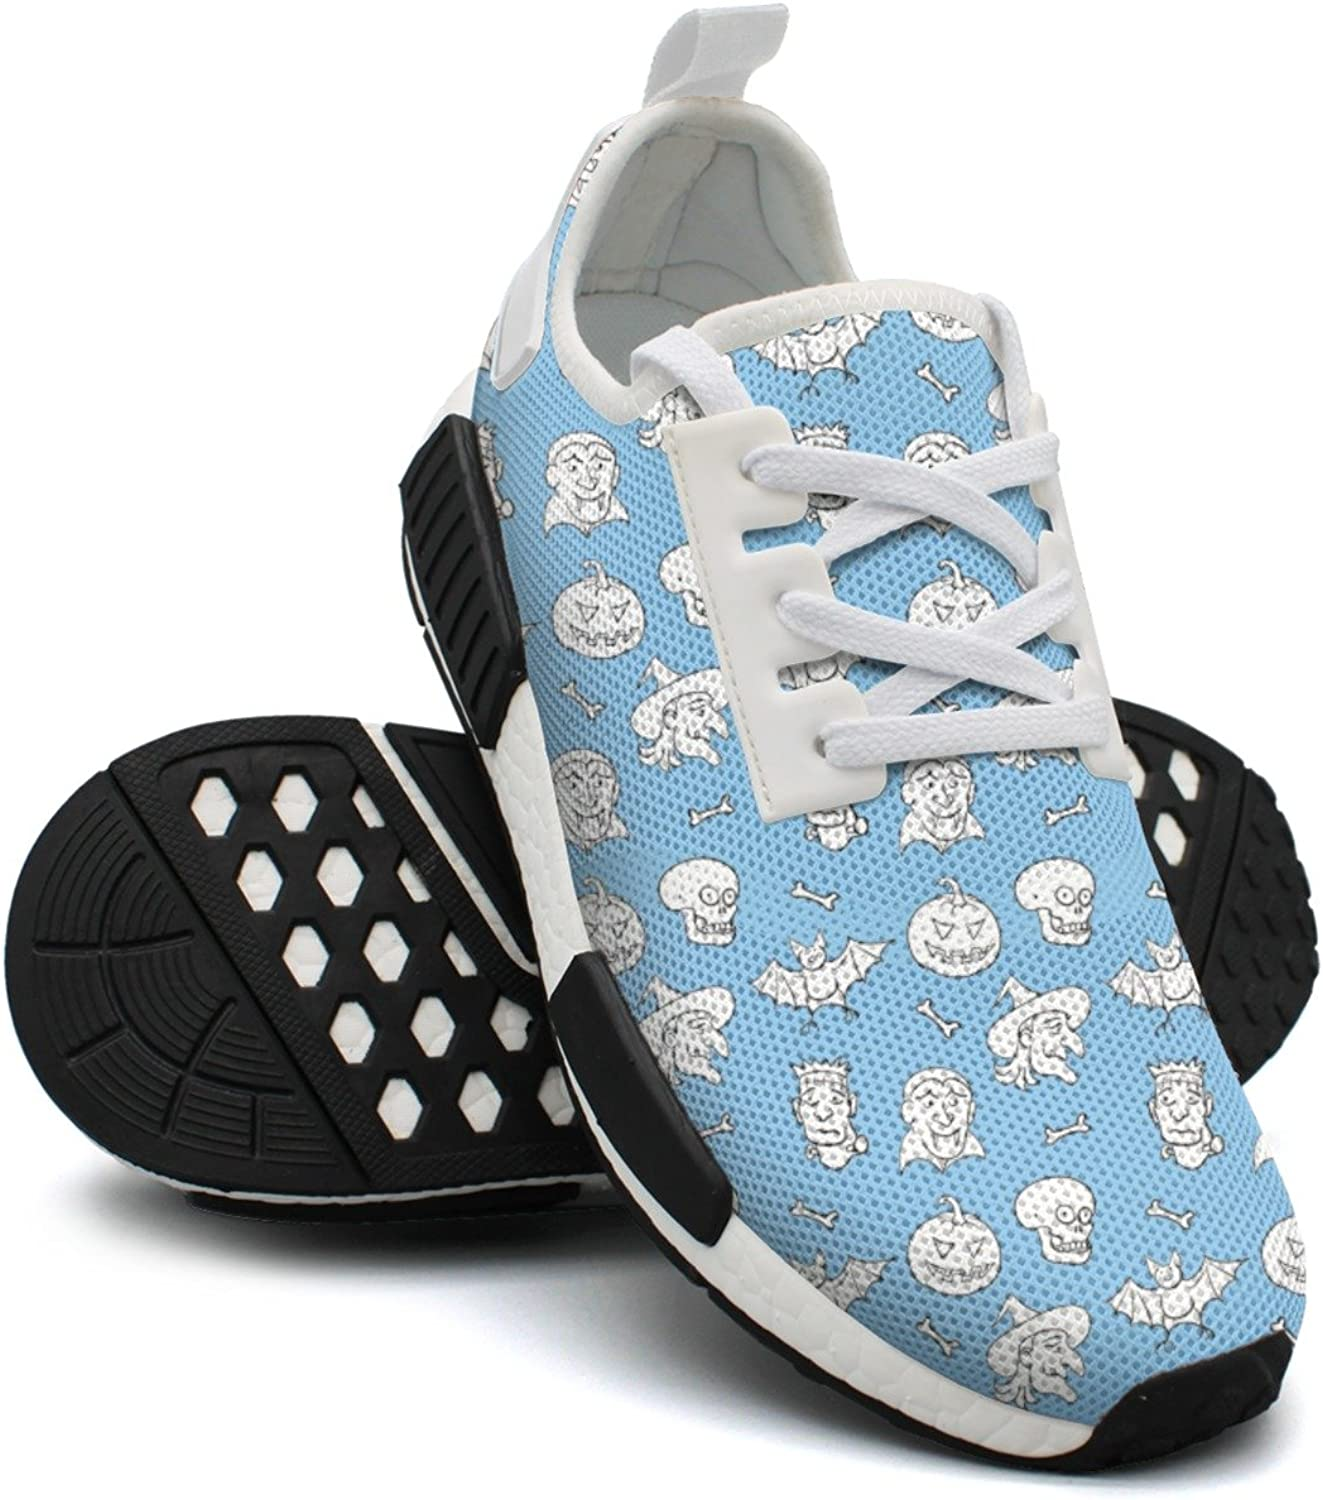 Skulls Halloween Fun Pattern Trail Running shoes For Women Nmd Casual Sport shoes